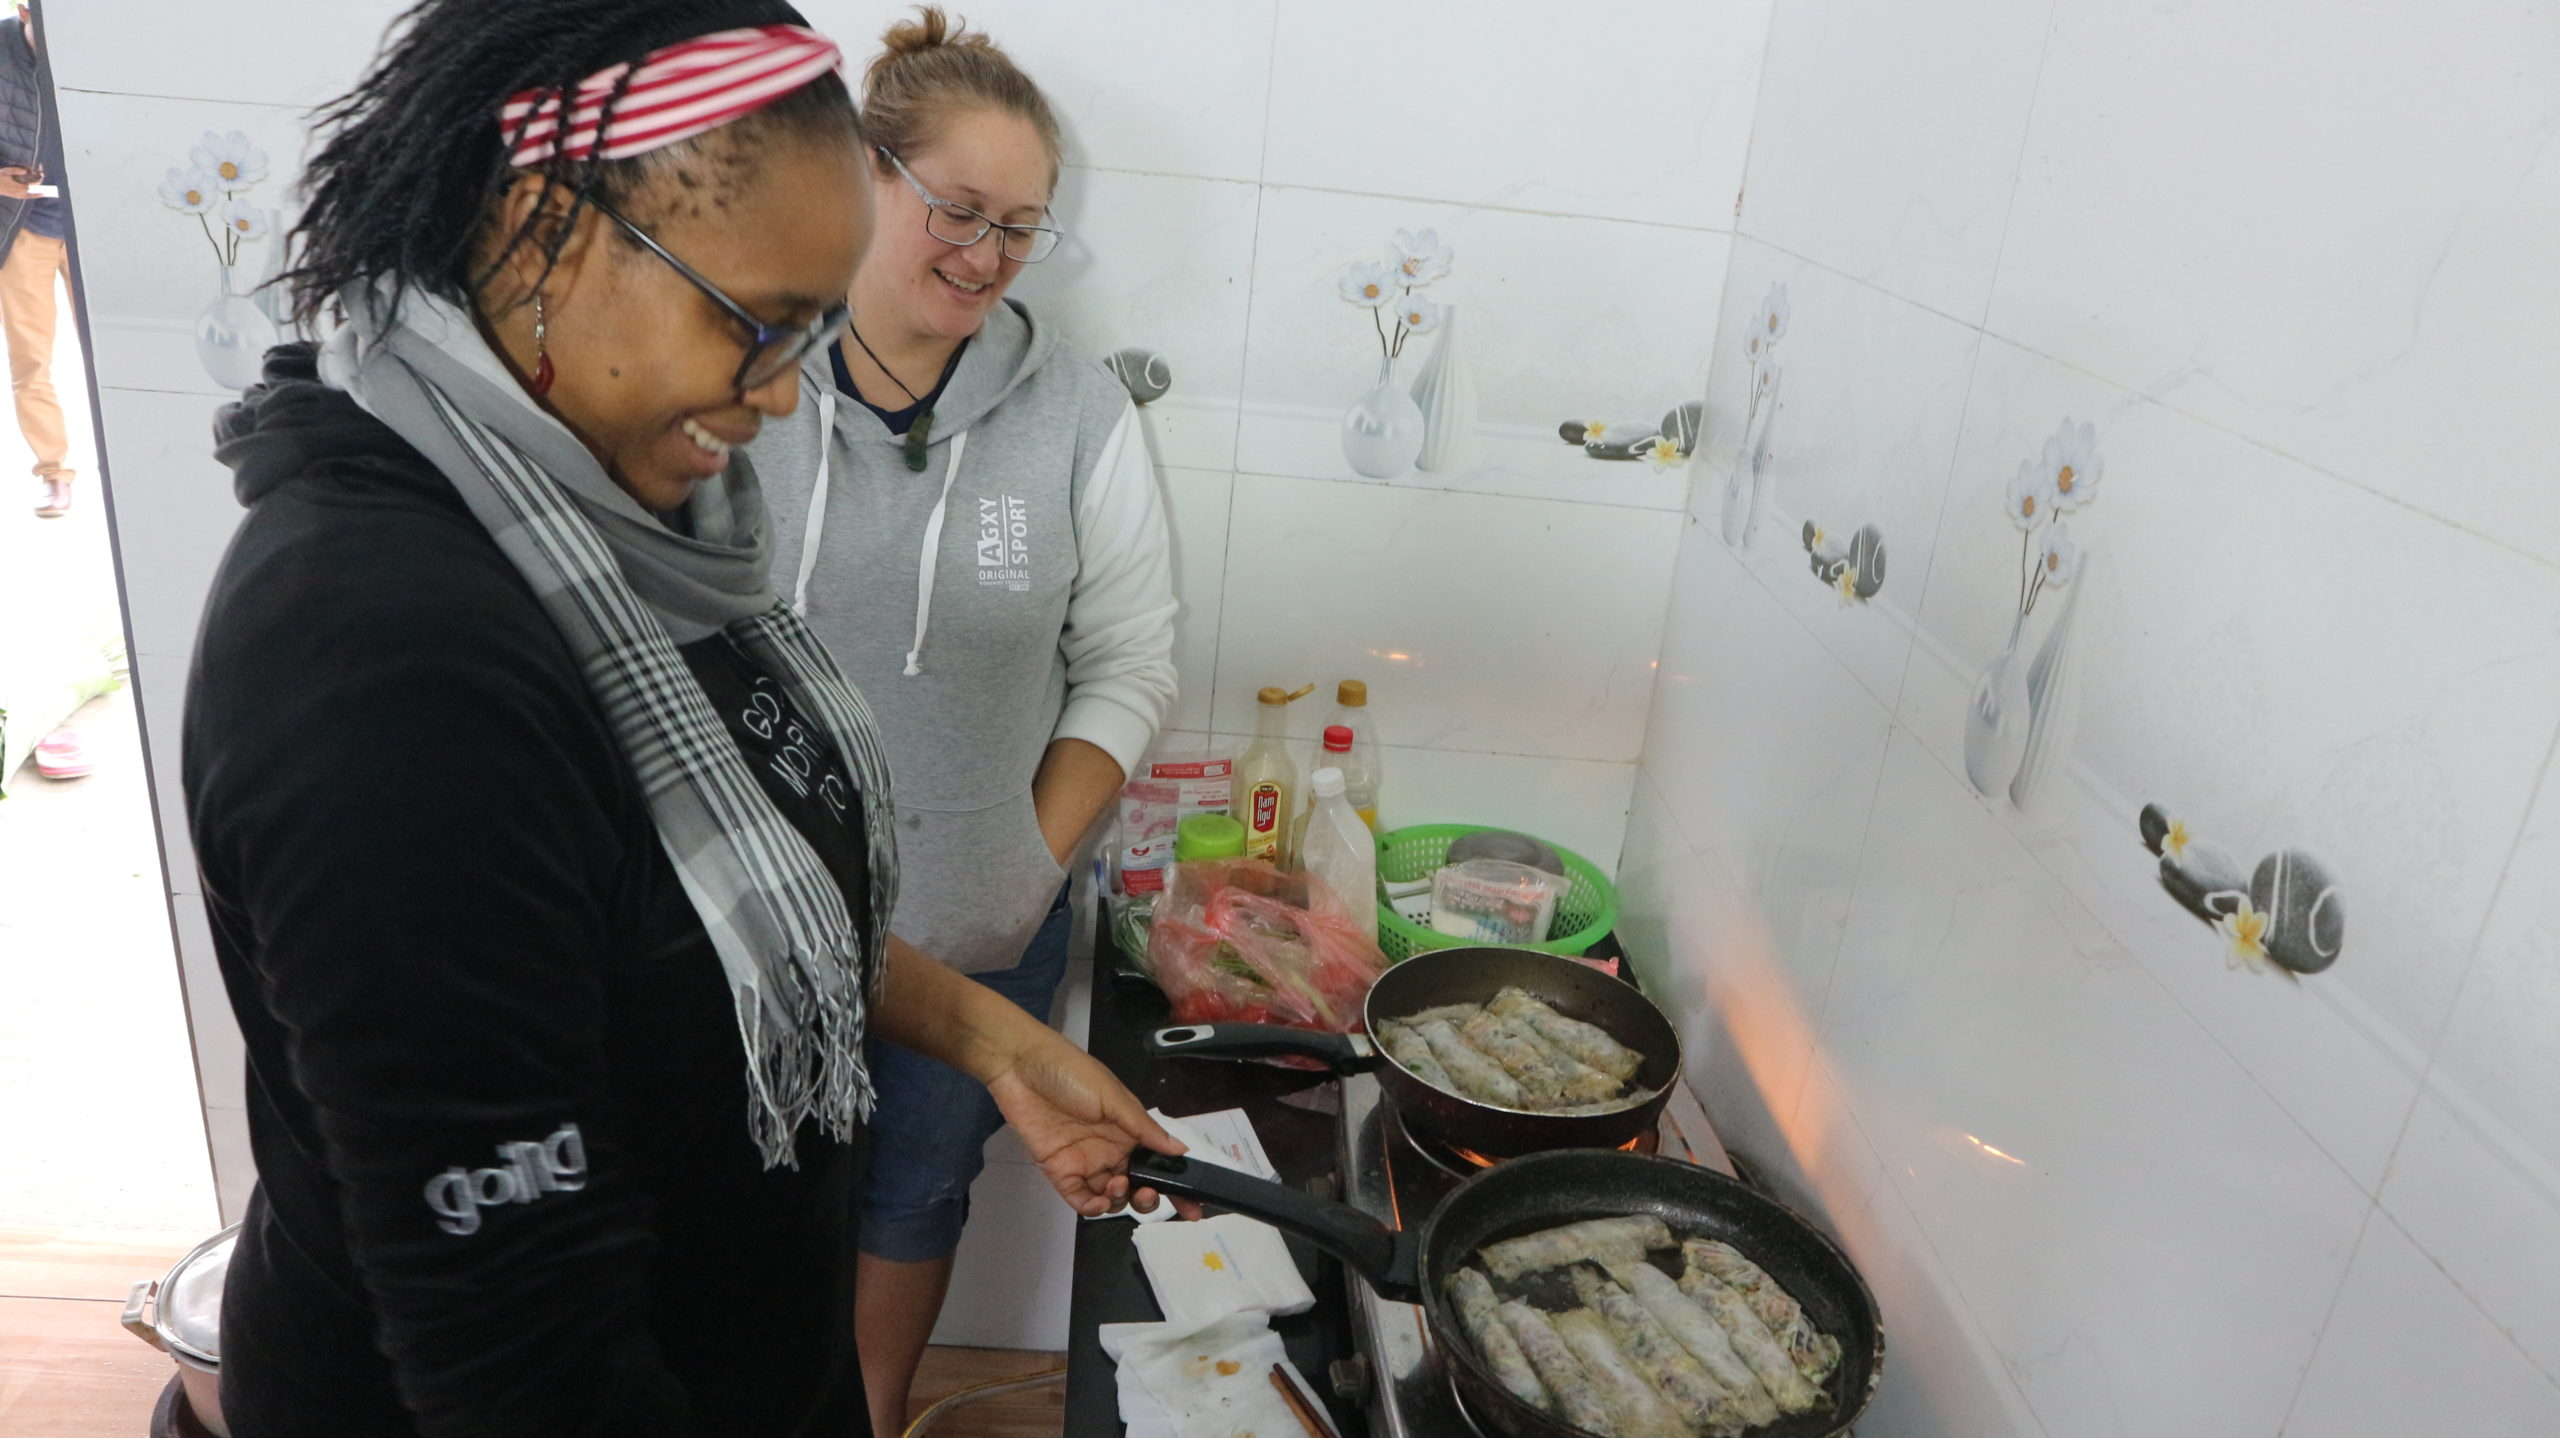 Our TESOL in Vietnam students also got a chance to take a Vietnamese cooking lesson previously during their orientation week.